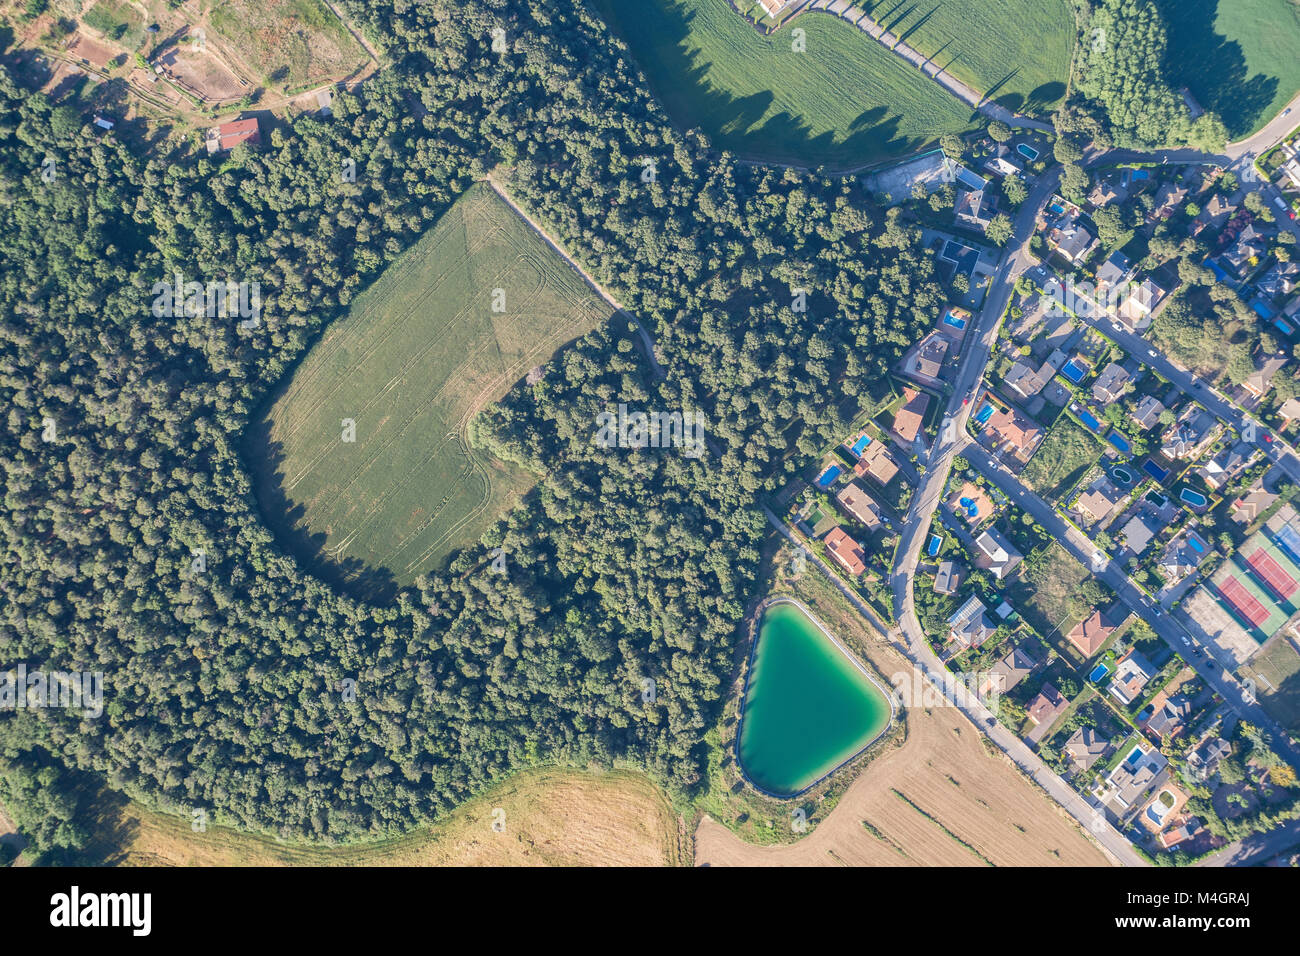 Aerial photography taken in Cardedeu, Catalonia (Spain) - Stock Image